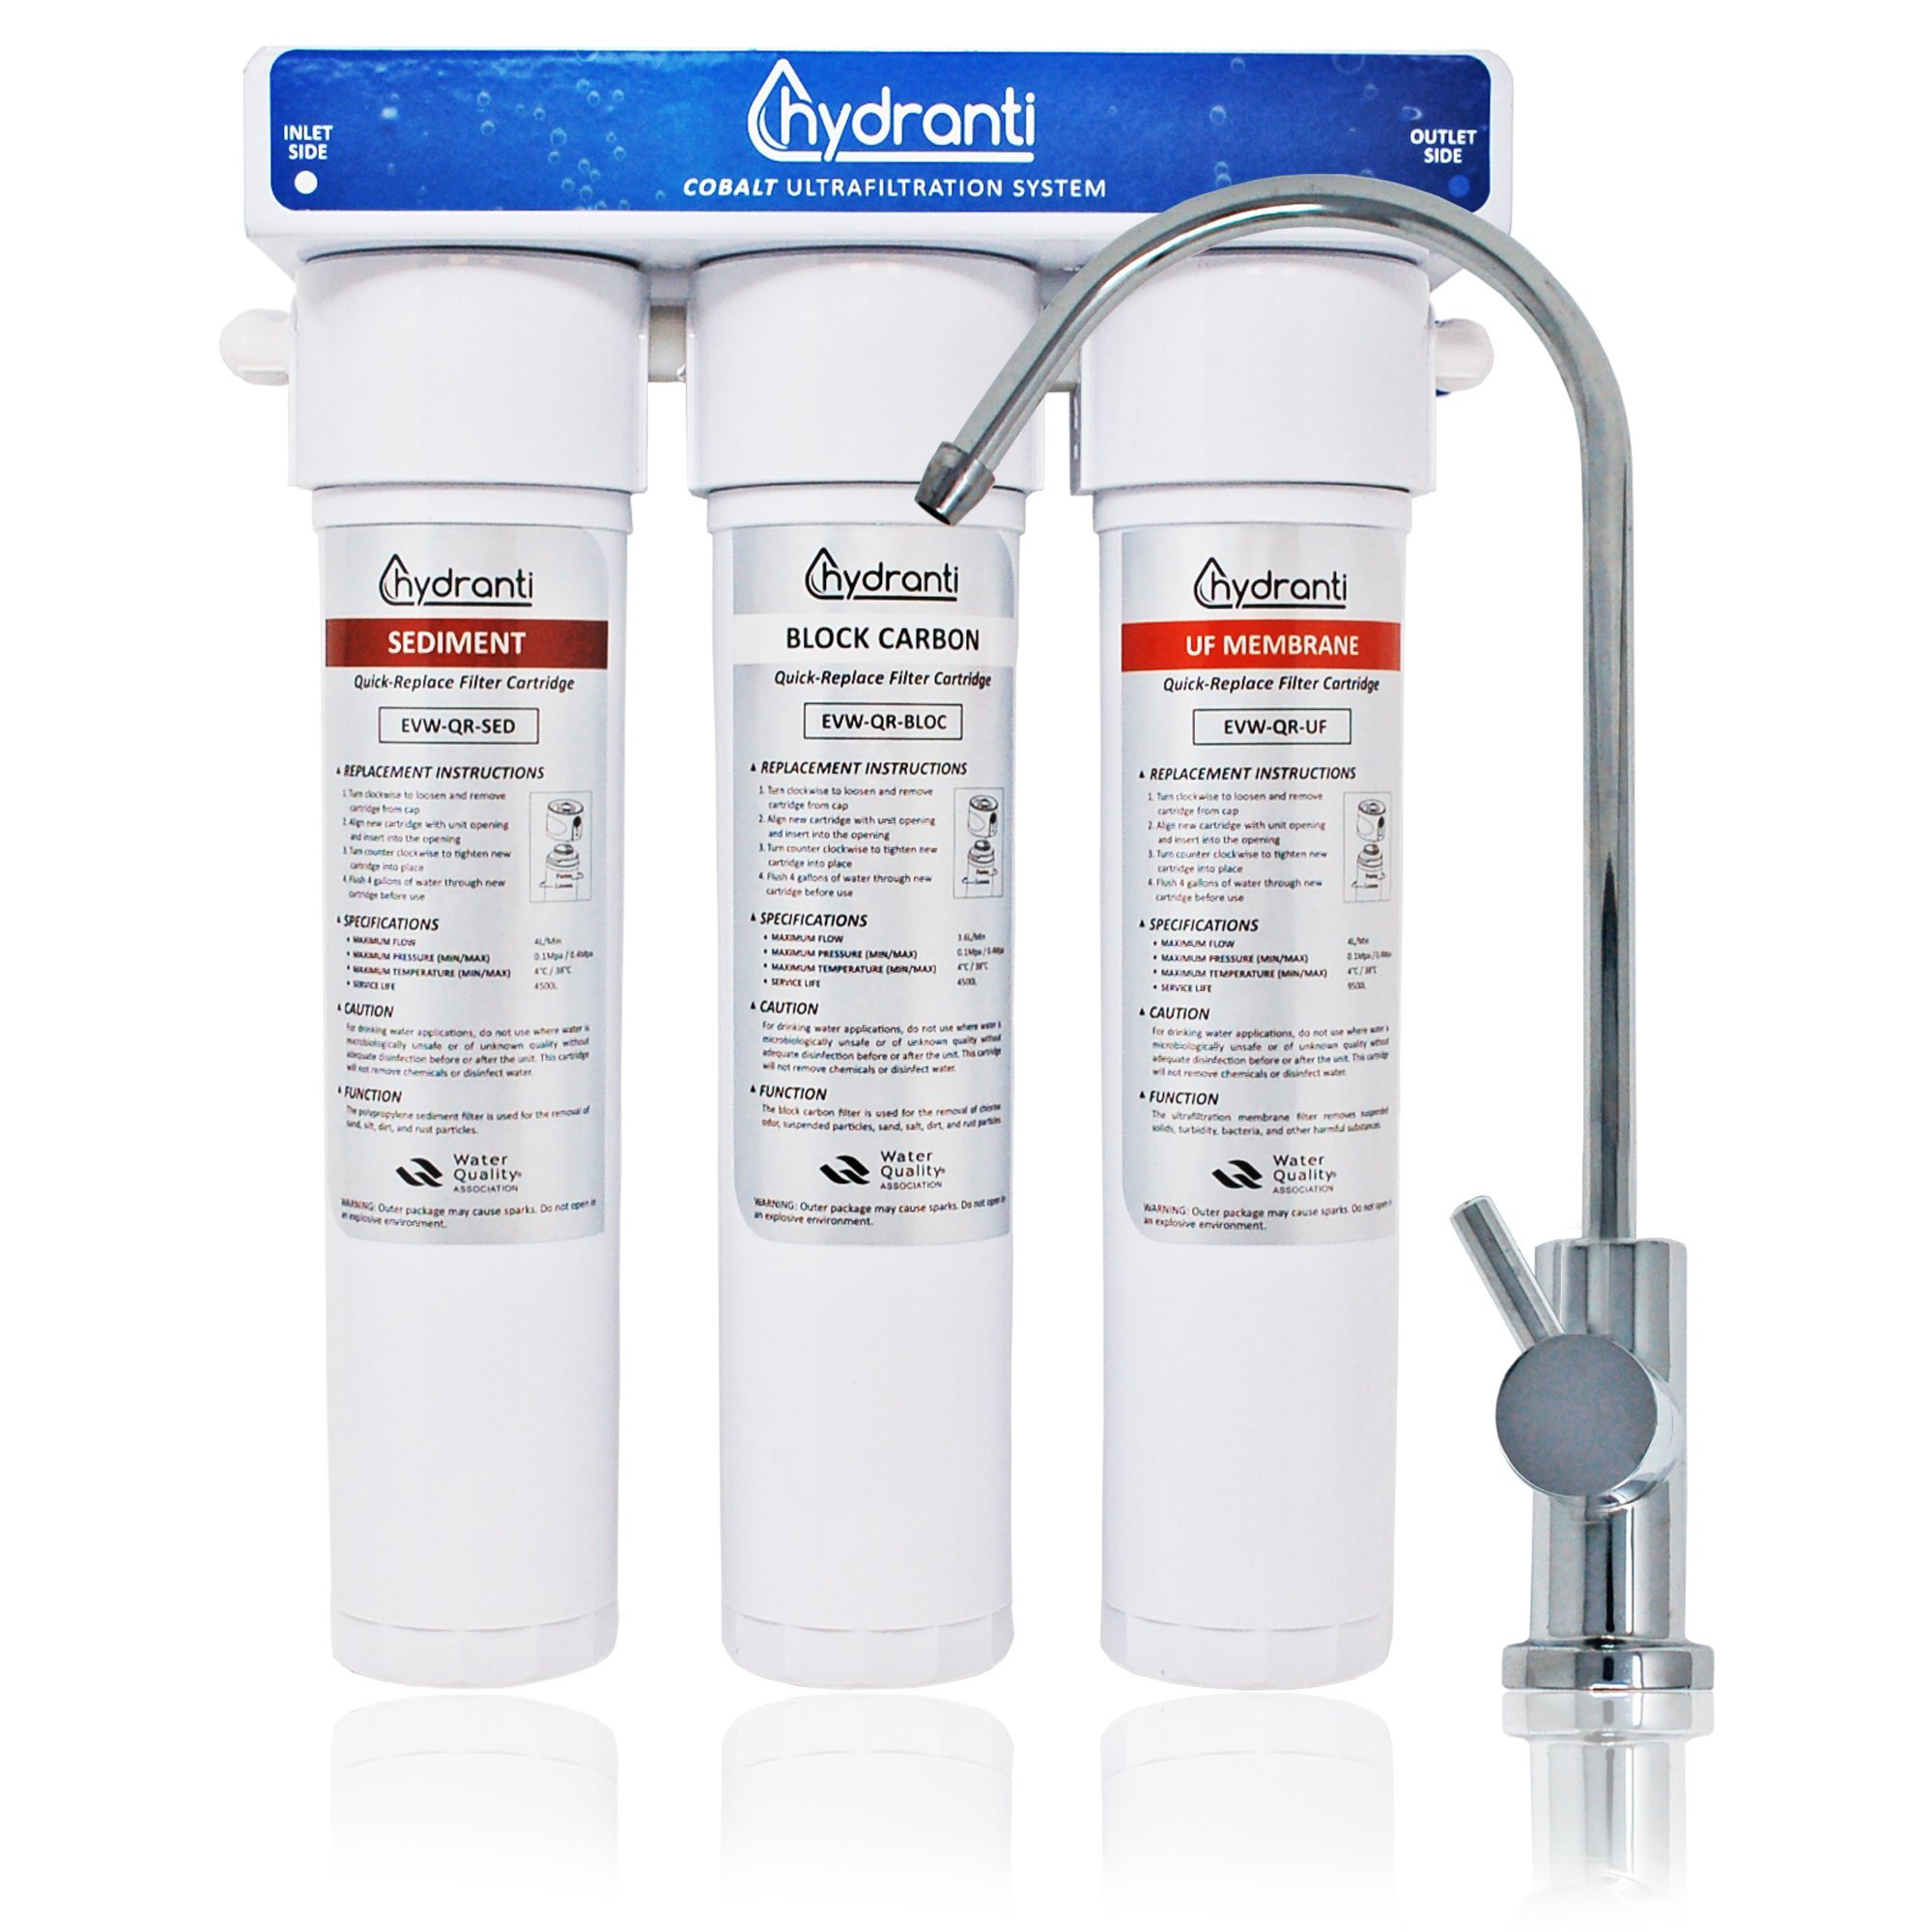 Hydranti Cobalt 3-Stage UF Under Sink Water Filtration System with 3 Cartridges - Home or Office Water Purification System - Chrome Faucet Design – Quick Installation Kit